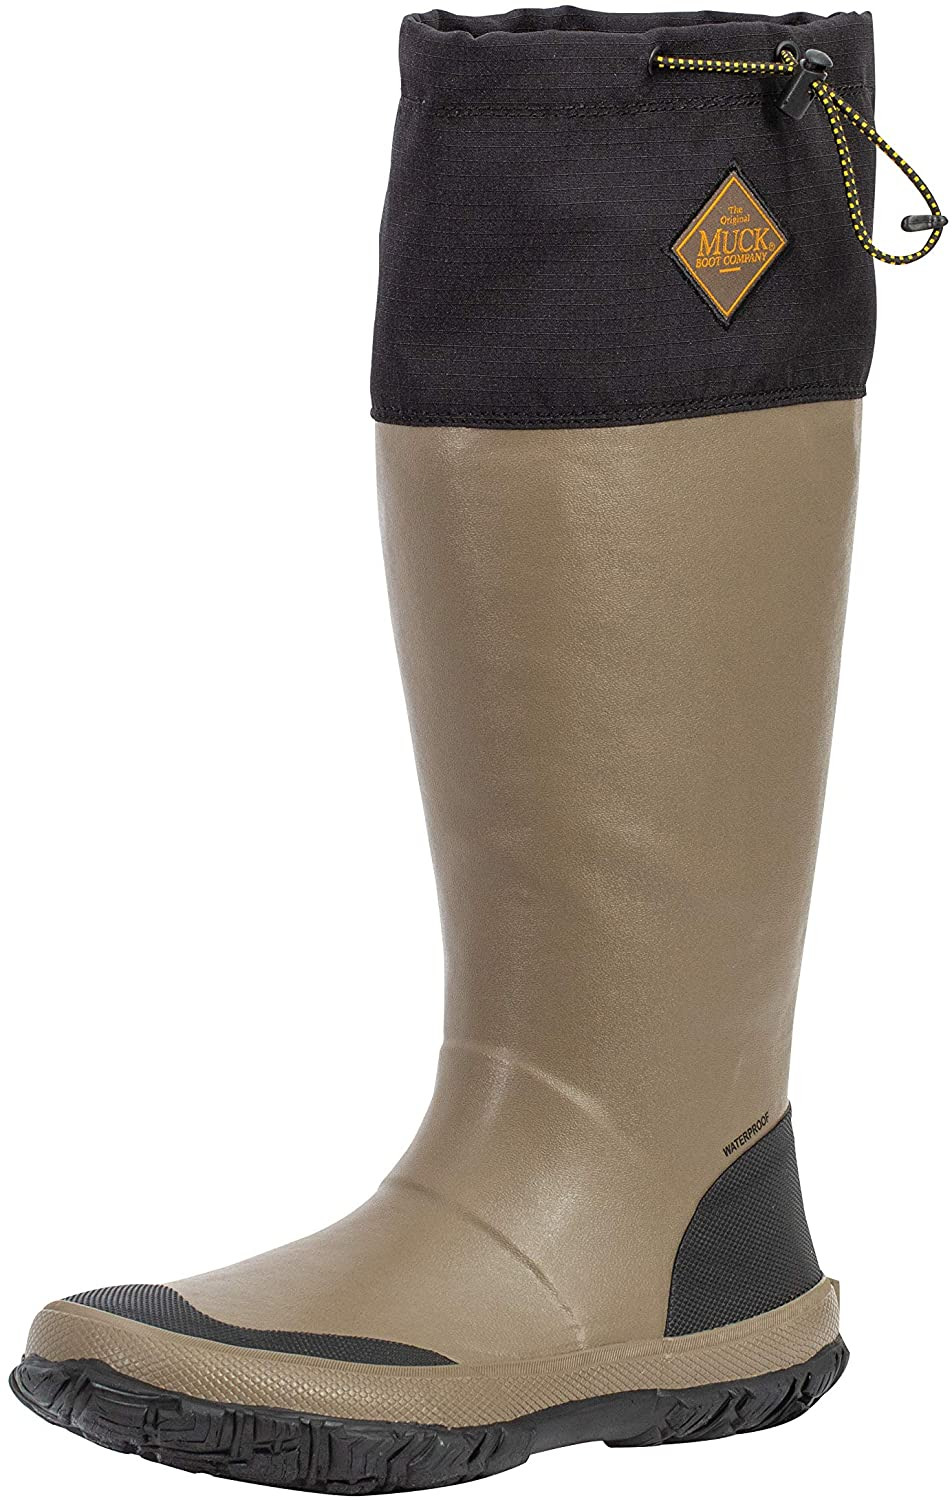 Unisex Muck Boot Forager Tall Waterproof Boot in Black/Tan view from the side